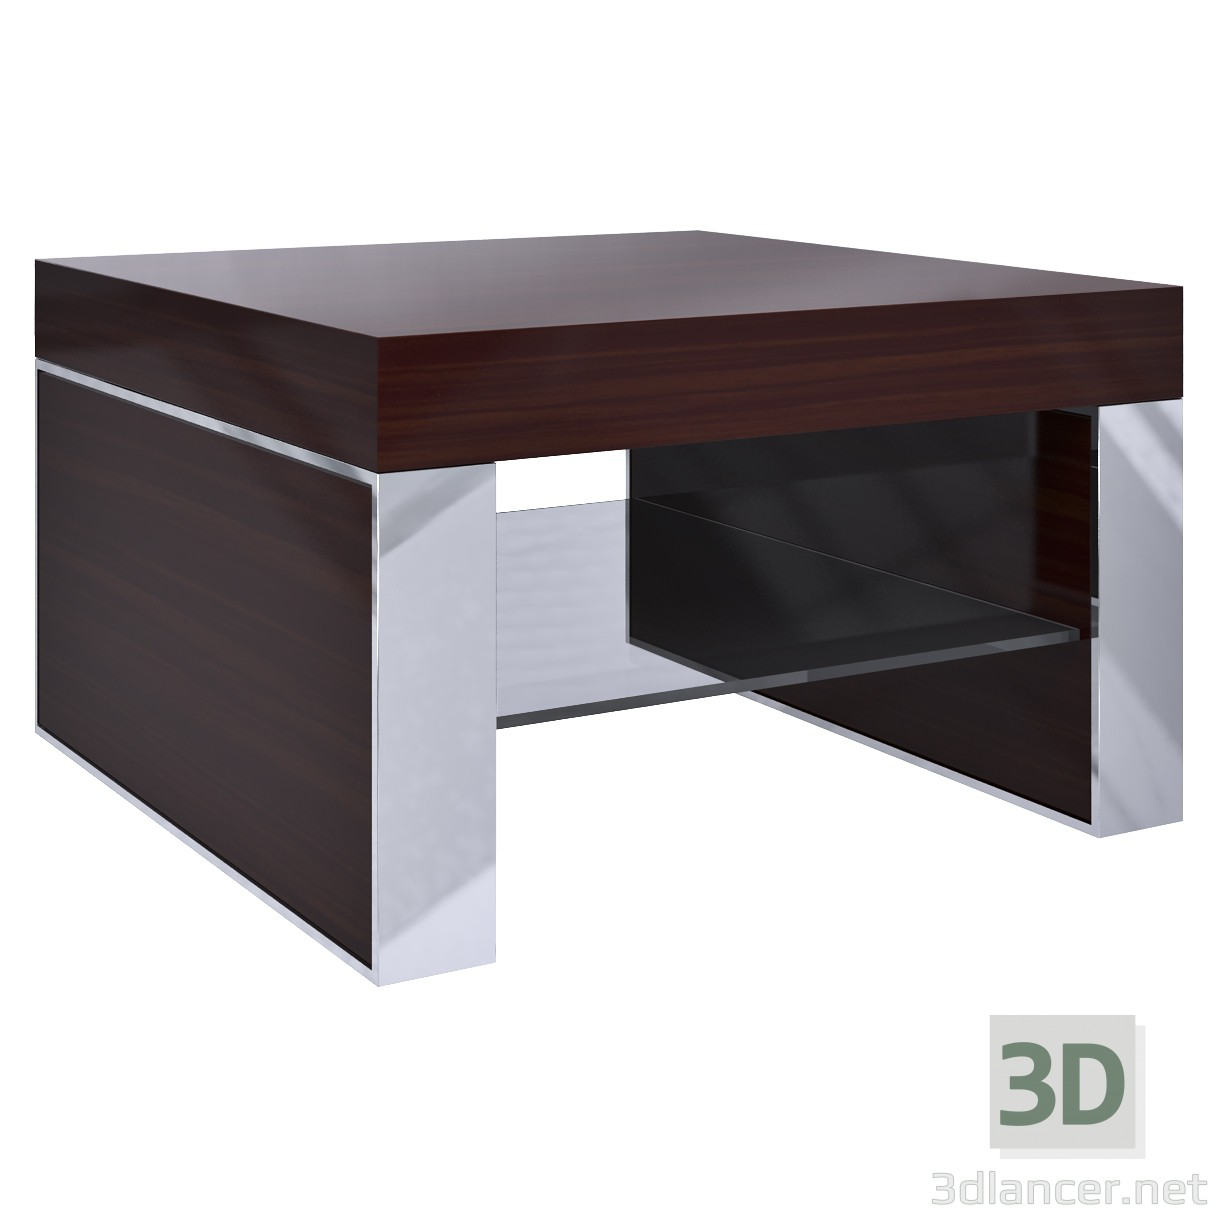 mod le 3d table basse pusha exclusif id 15739. Black Bedroom Furniture Sets. Home Design Ideas